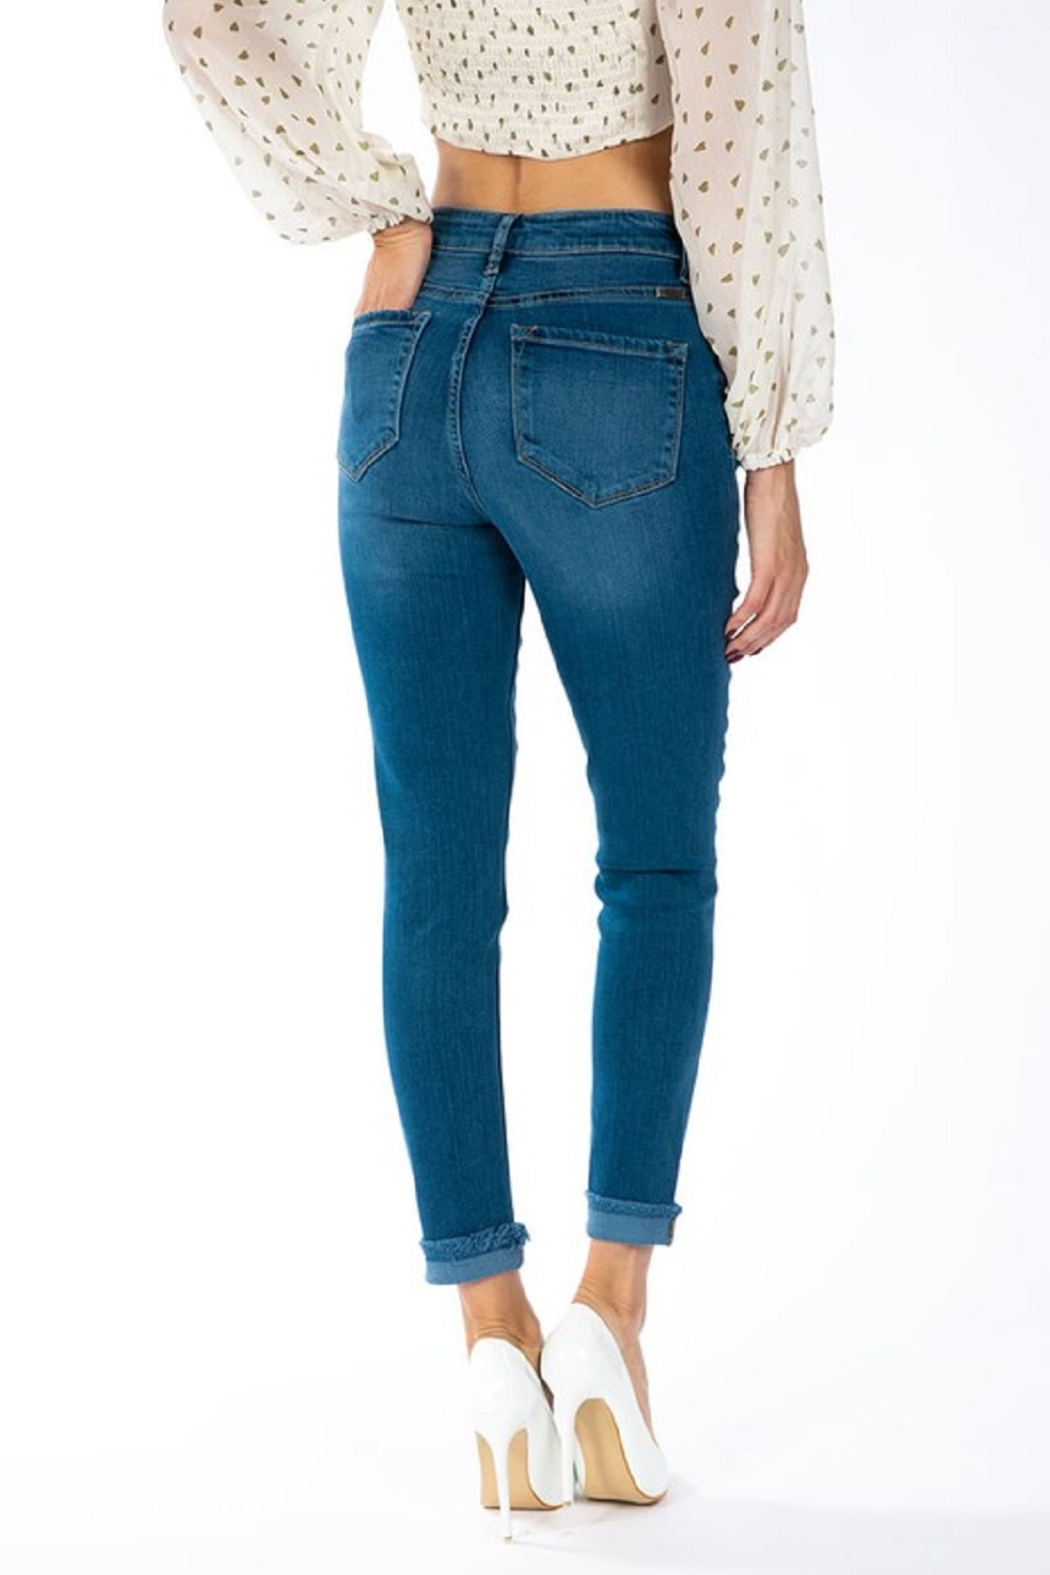 KanCan Gemma Button Down Skinny - Back Cropped Image